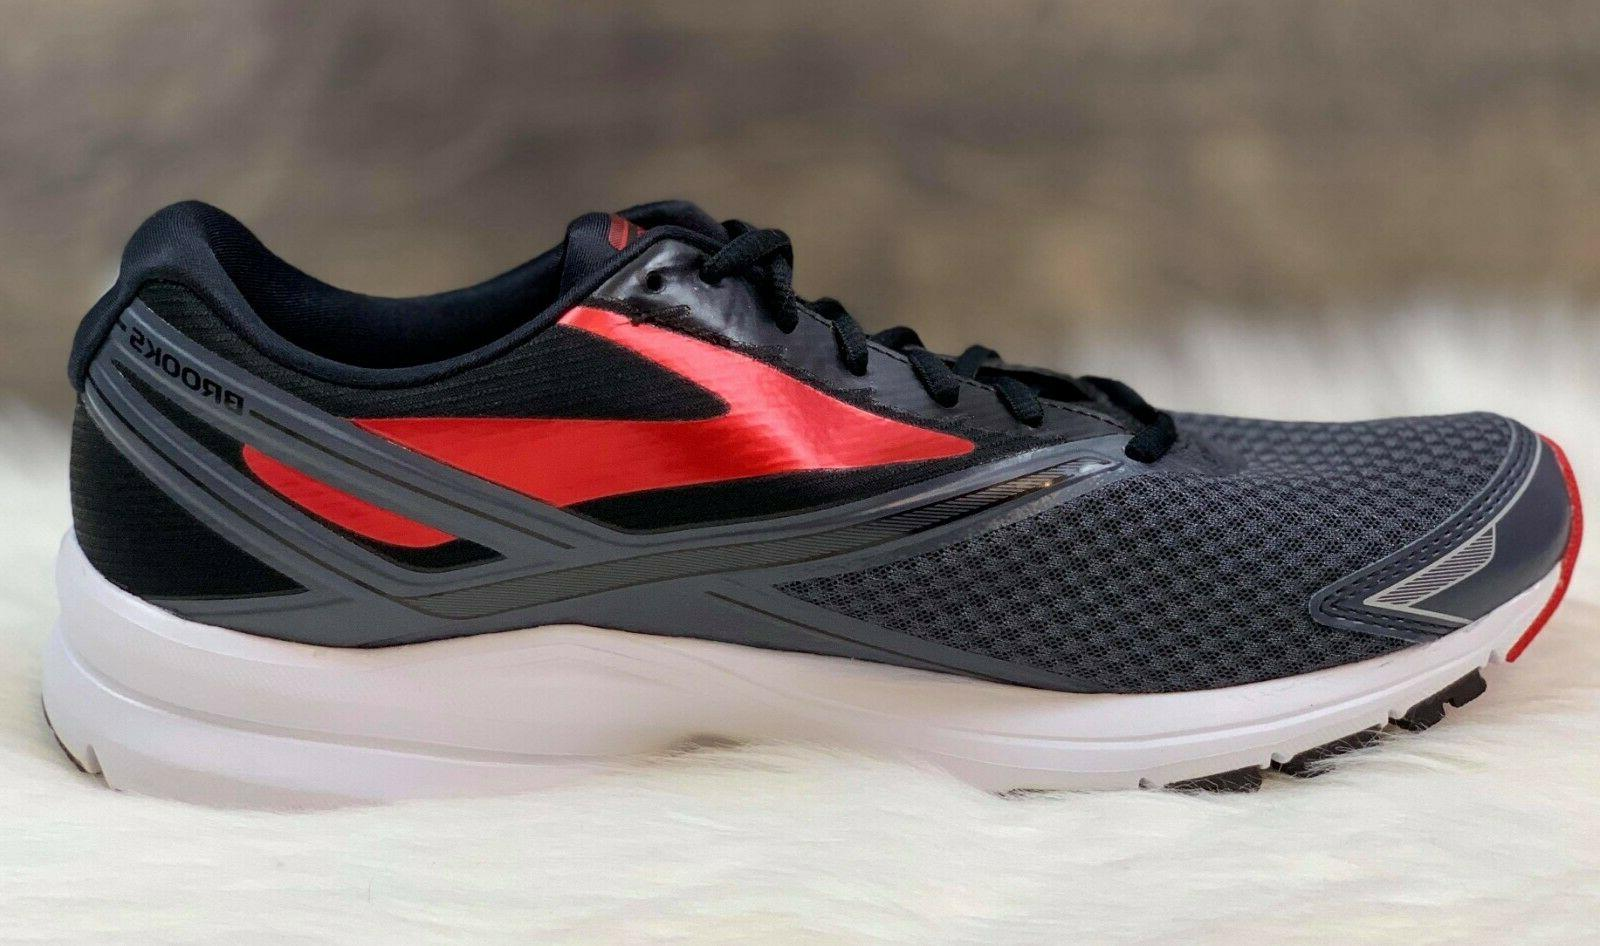 Brooks 4 Running Shoes Grey/Black/Red Size